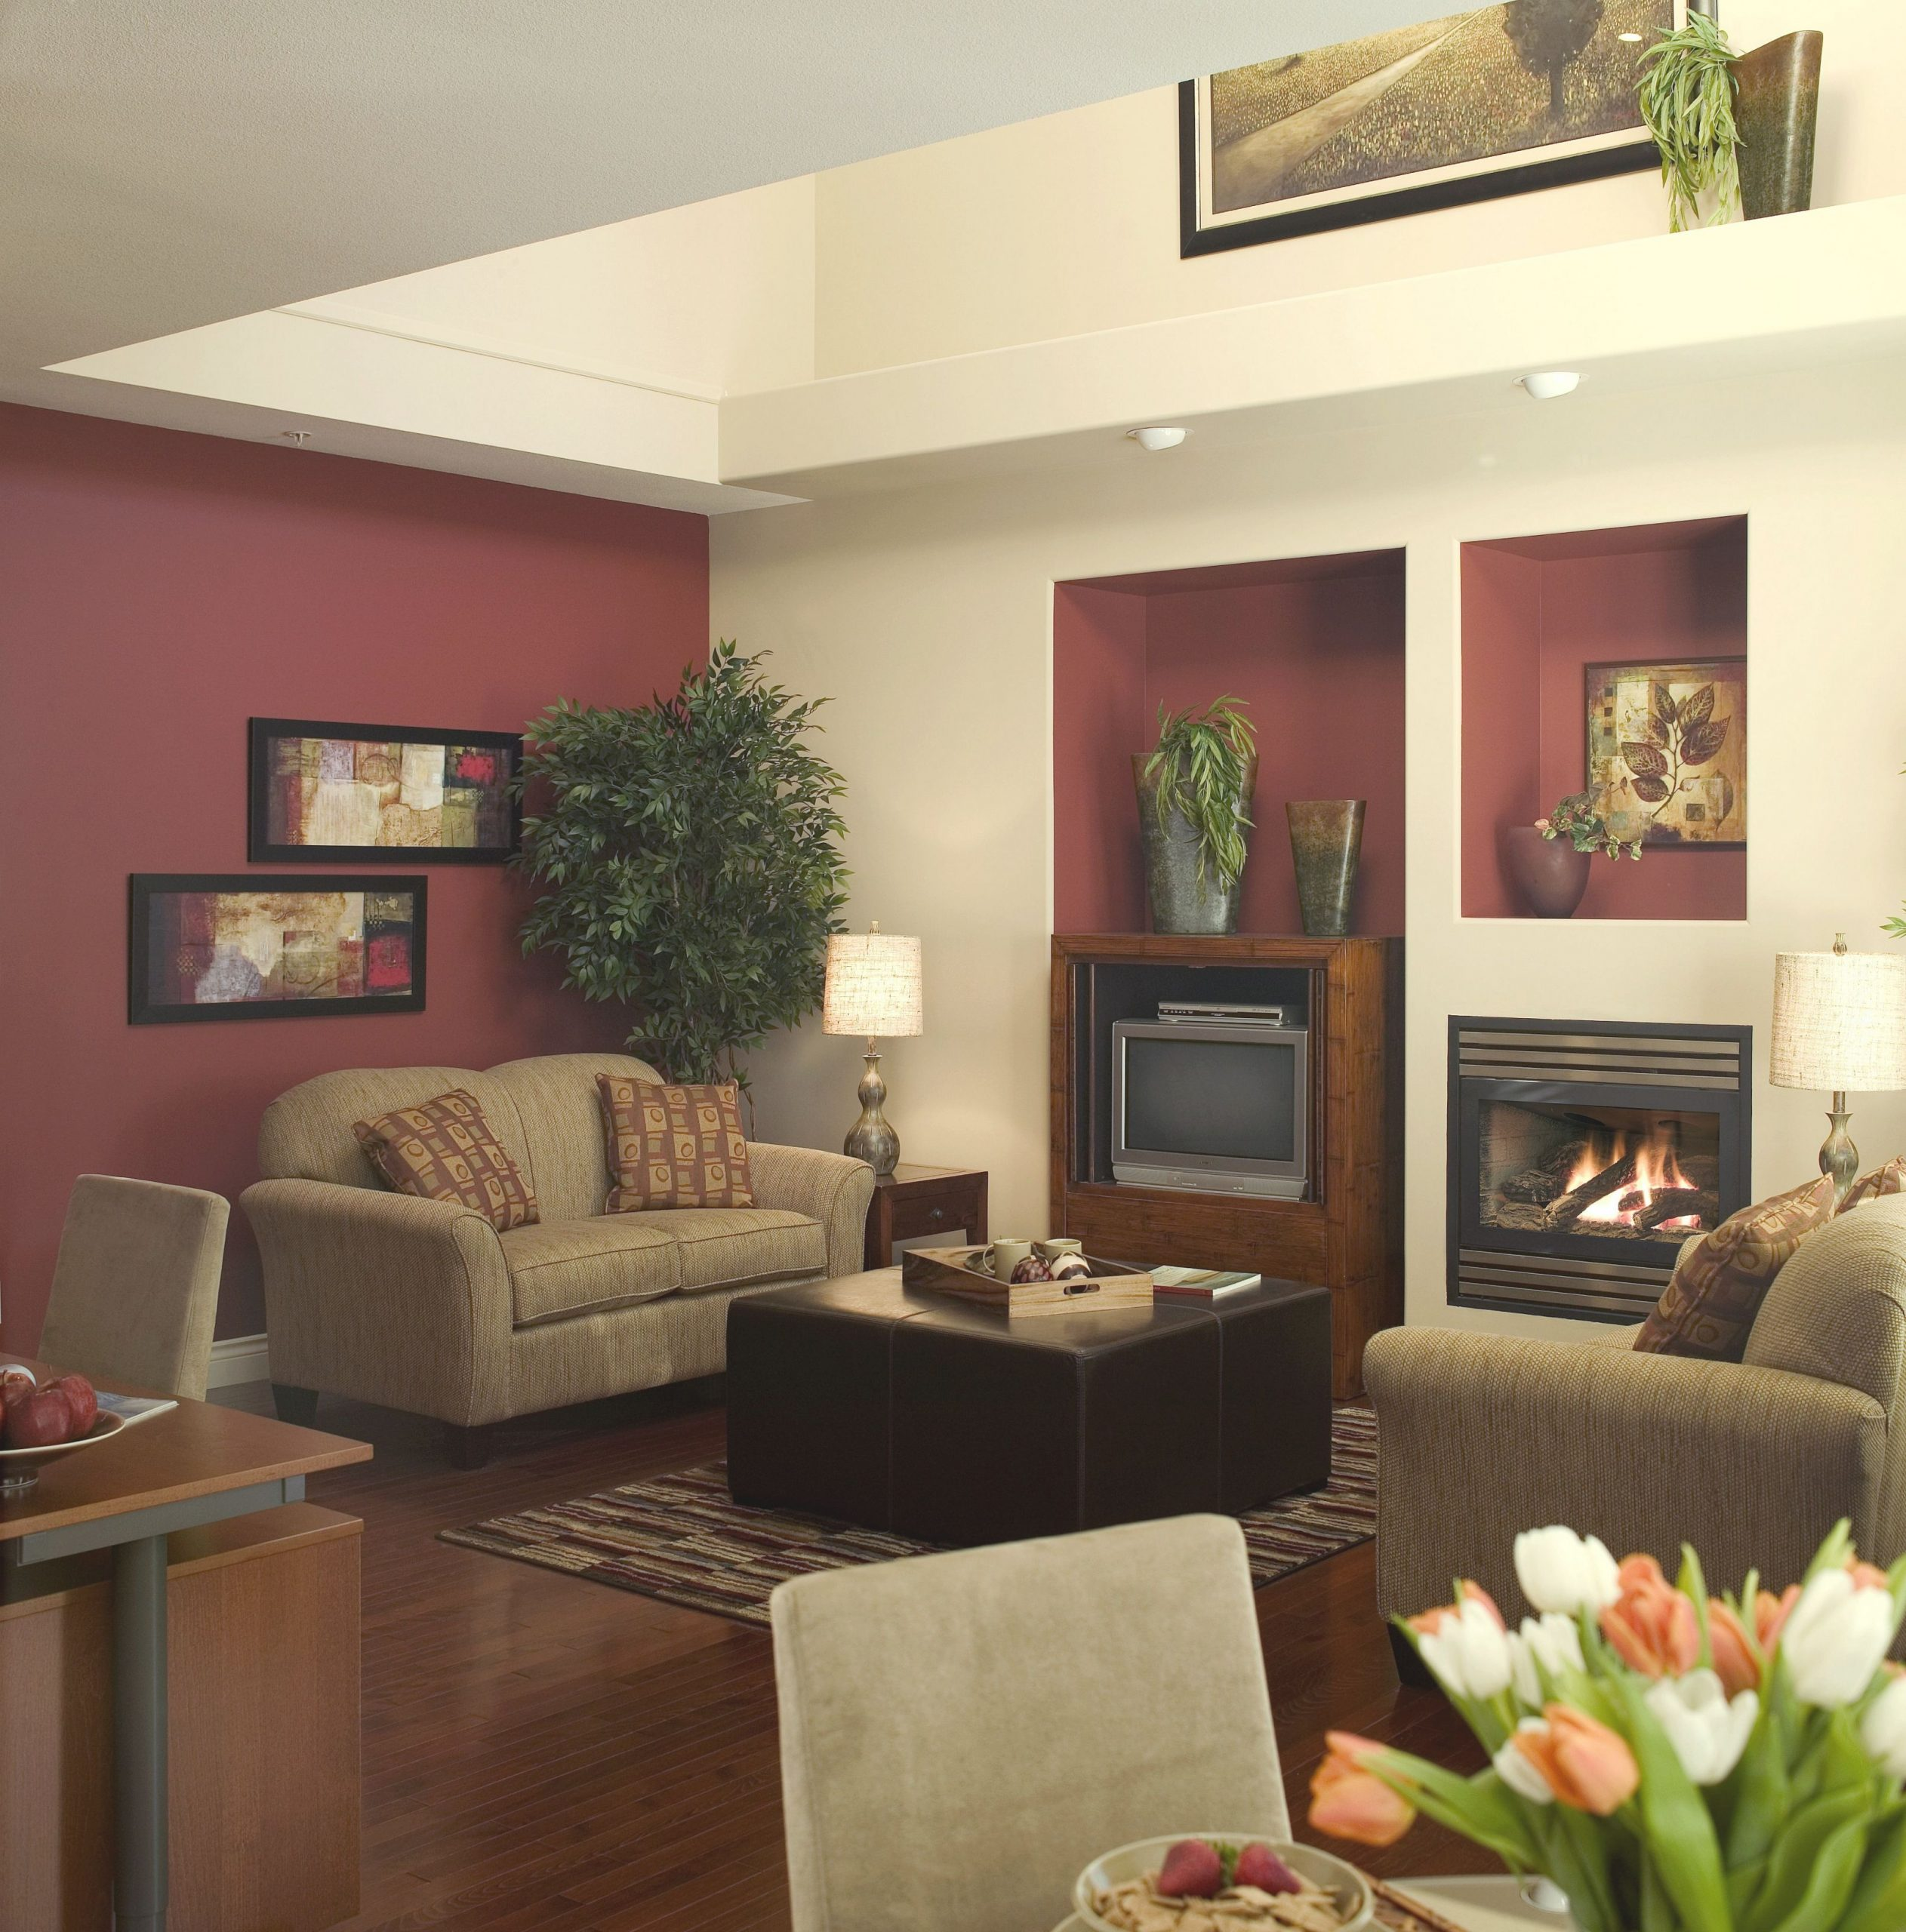 Popular House Paint Colors For 2014 | Burgundy Living Room with Living Room Decorating Ideas 2014